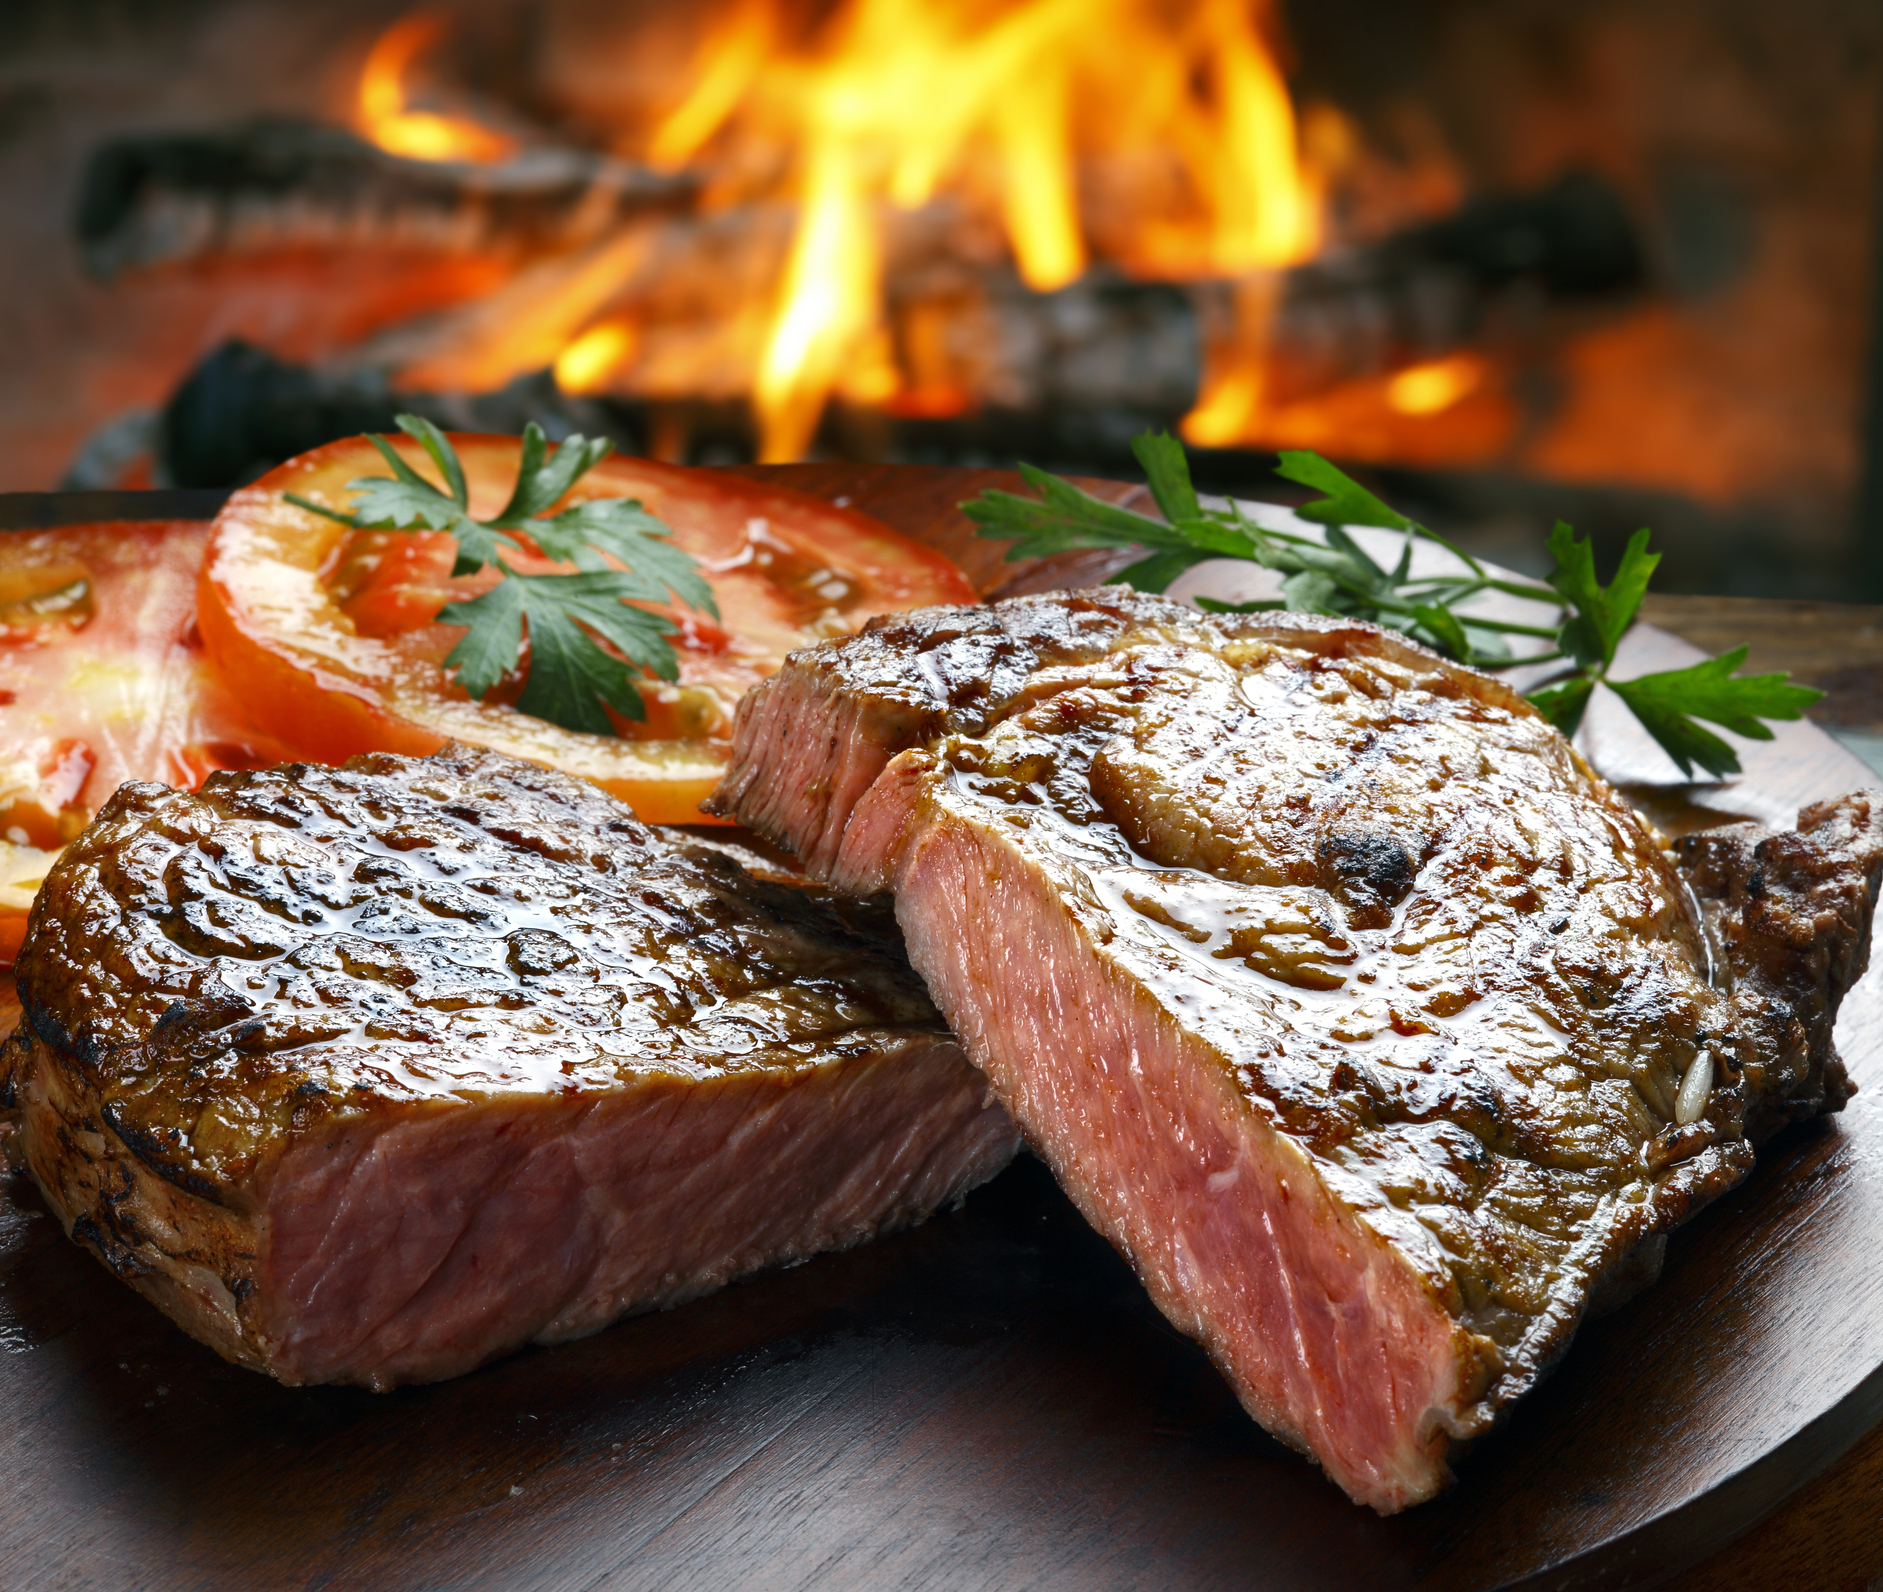 unexplained cases of anaphylaxis linked to red meat allergy